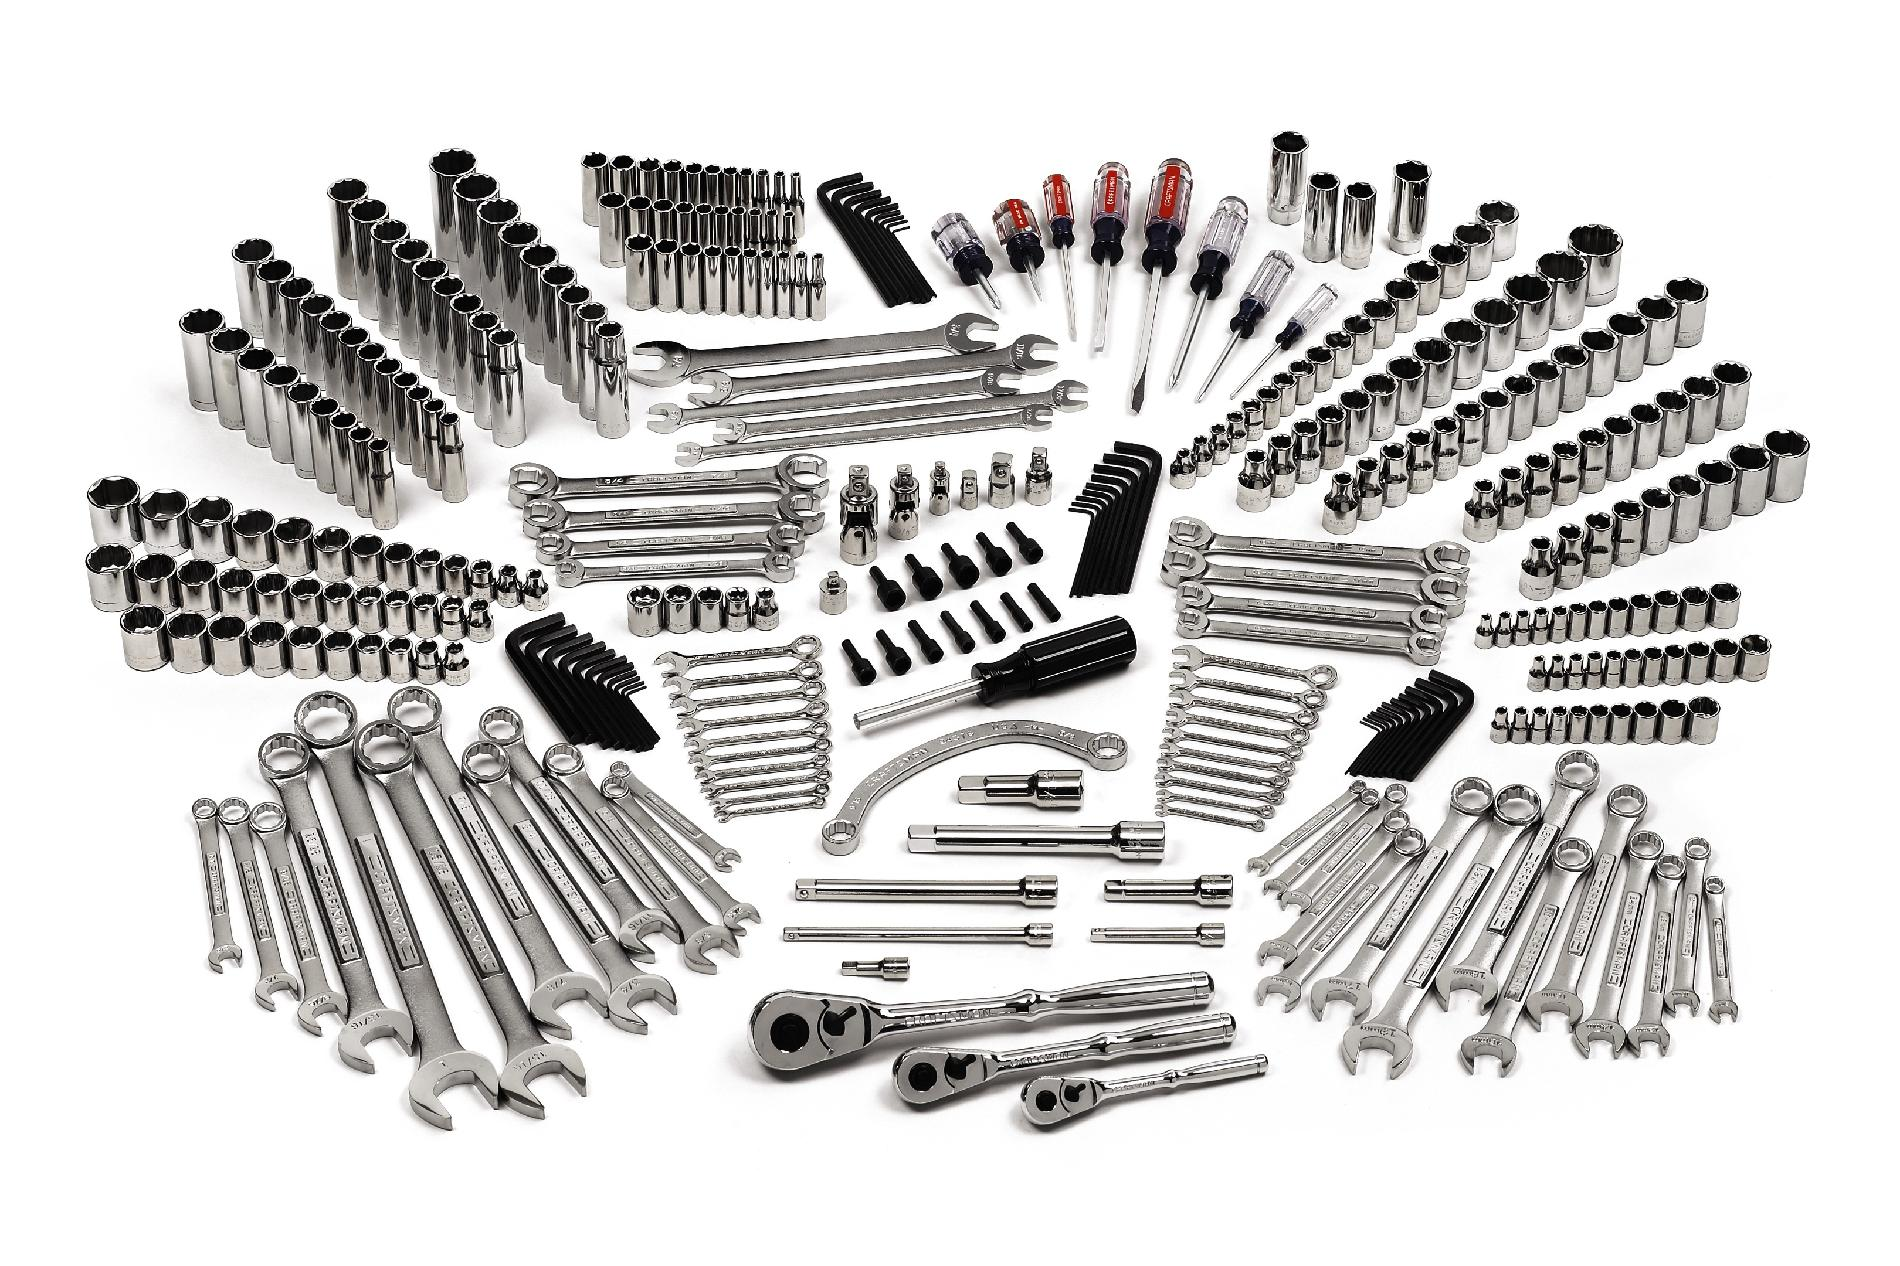 348-pc-Mechanics-Tool-Set